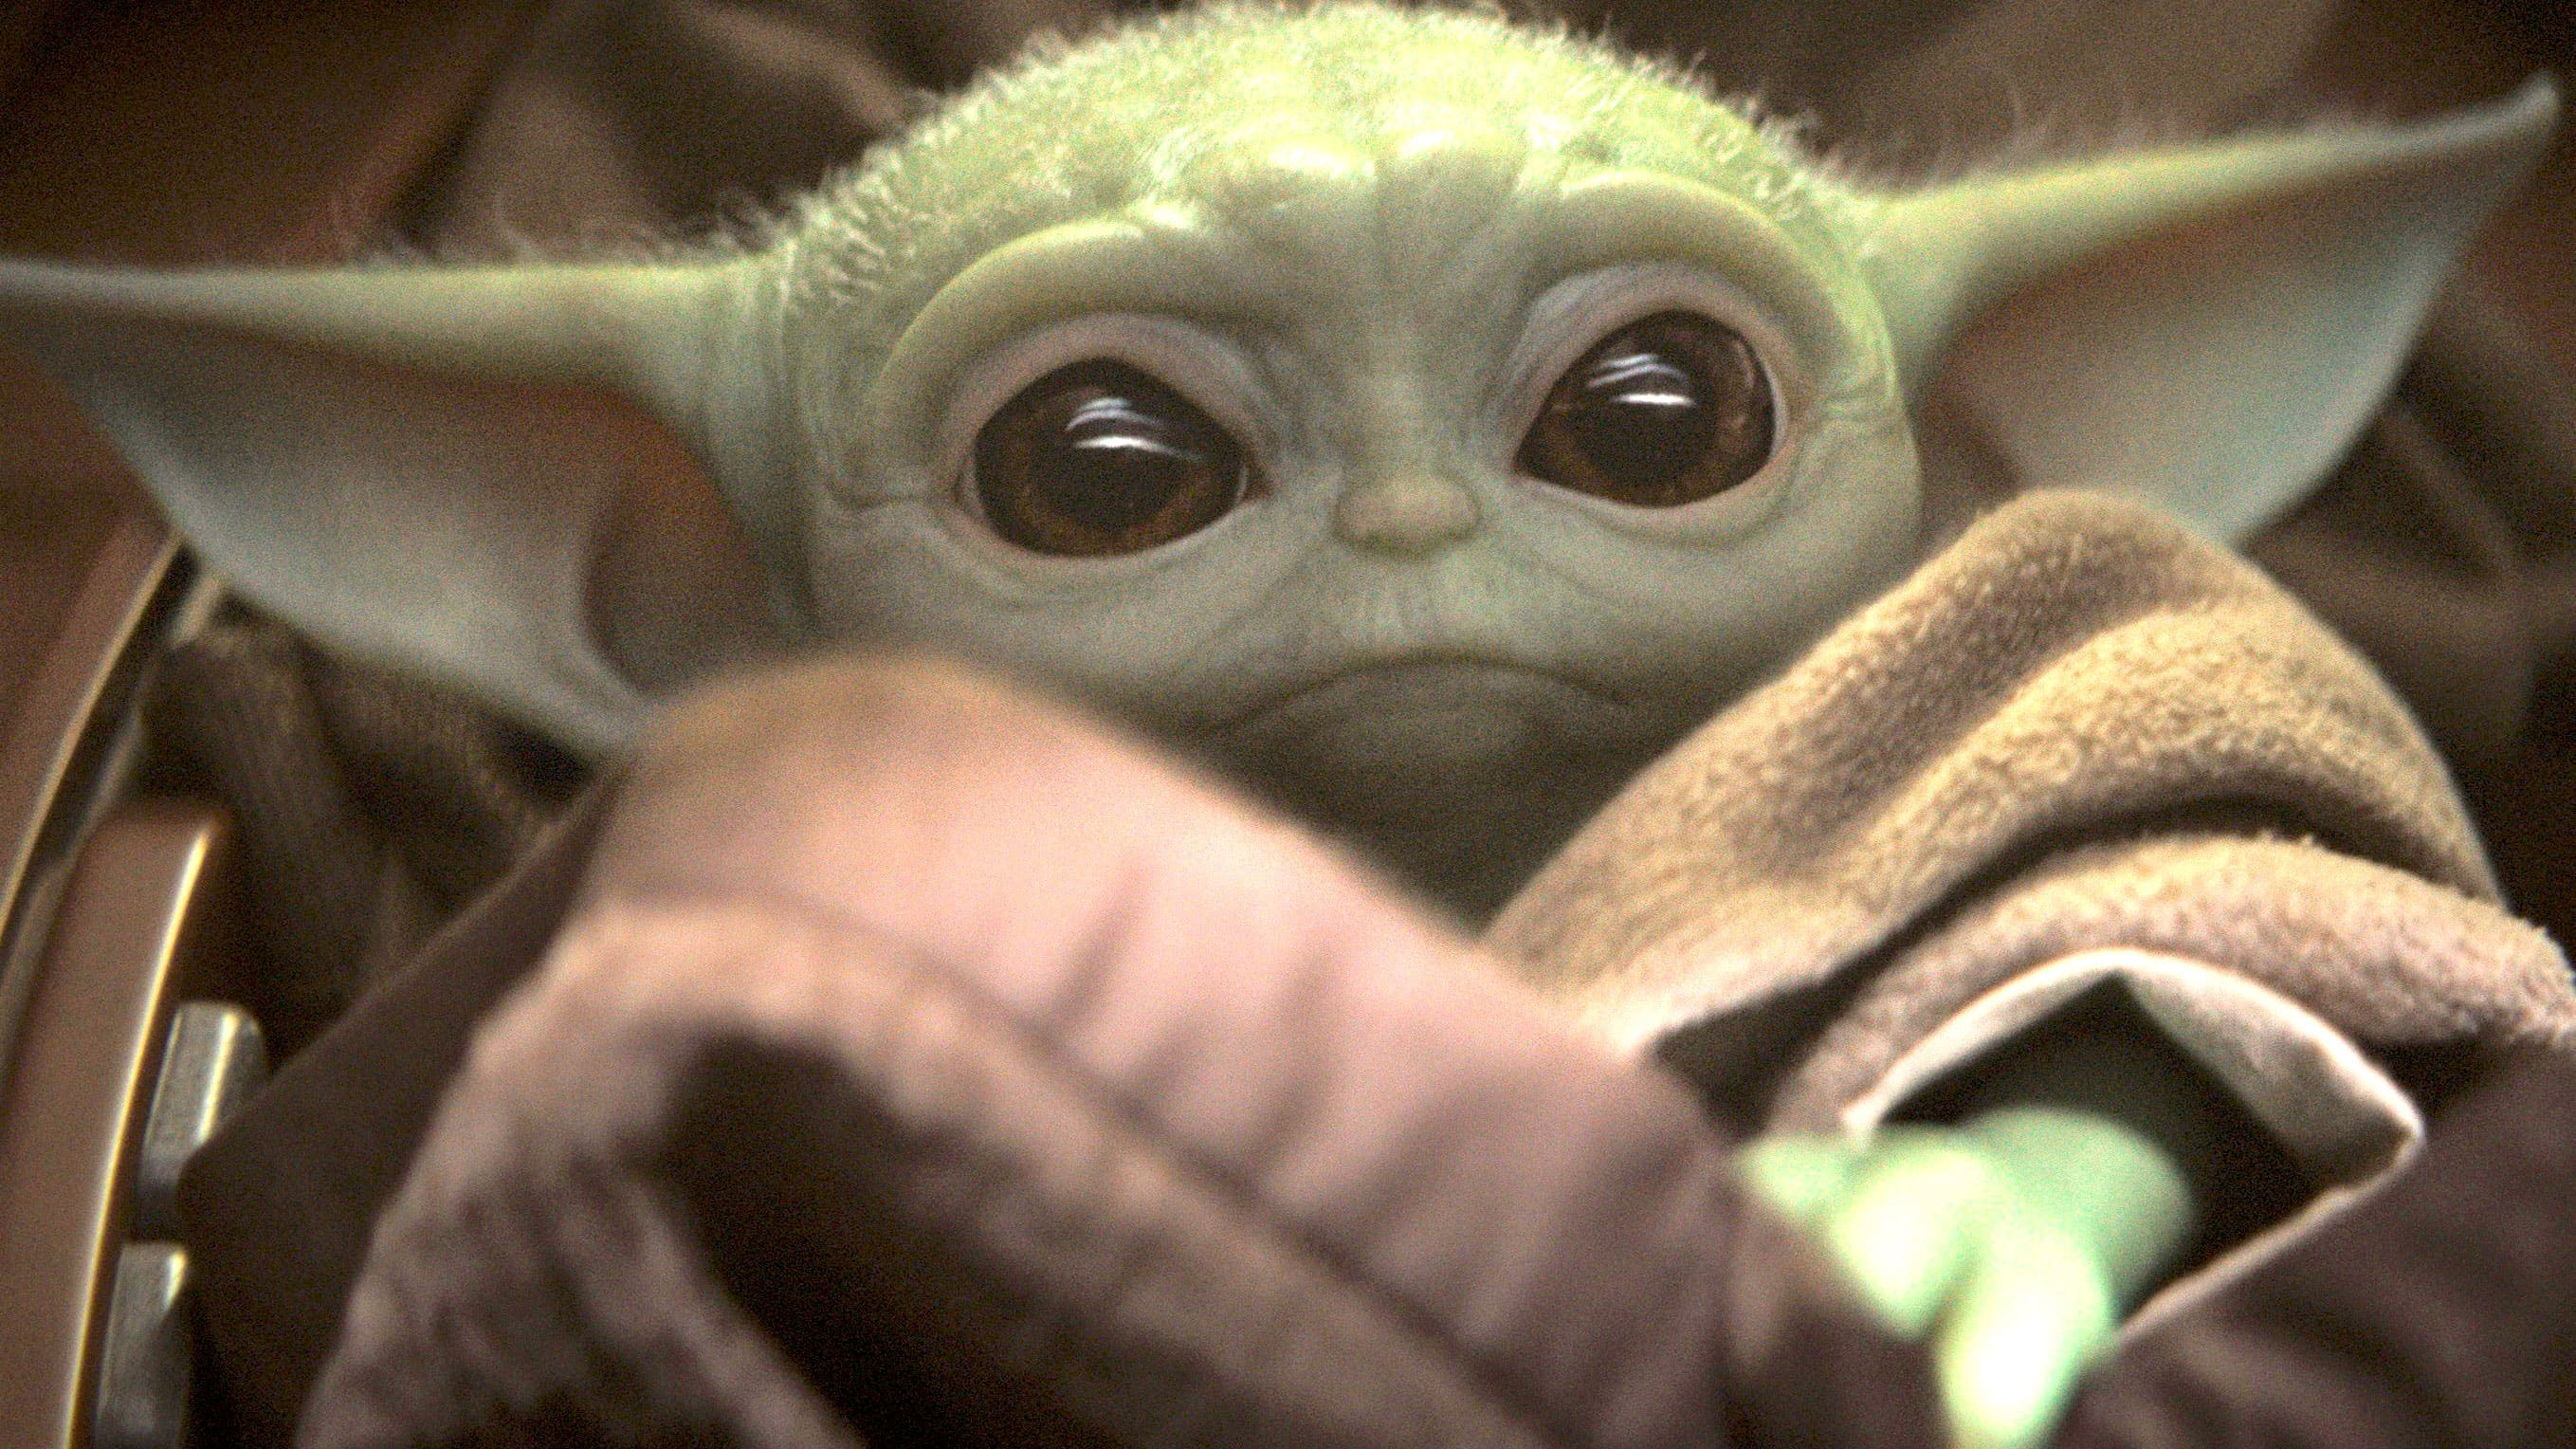 'Baby Yoda' caught the merch industry off guard, and now they're trying to catch up